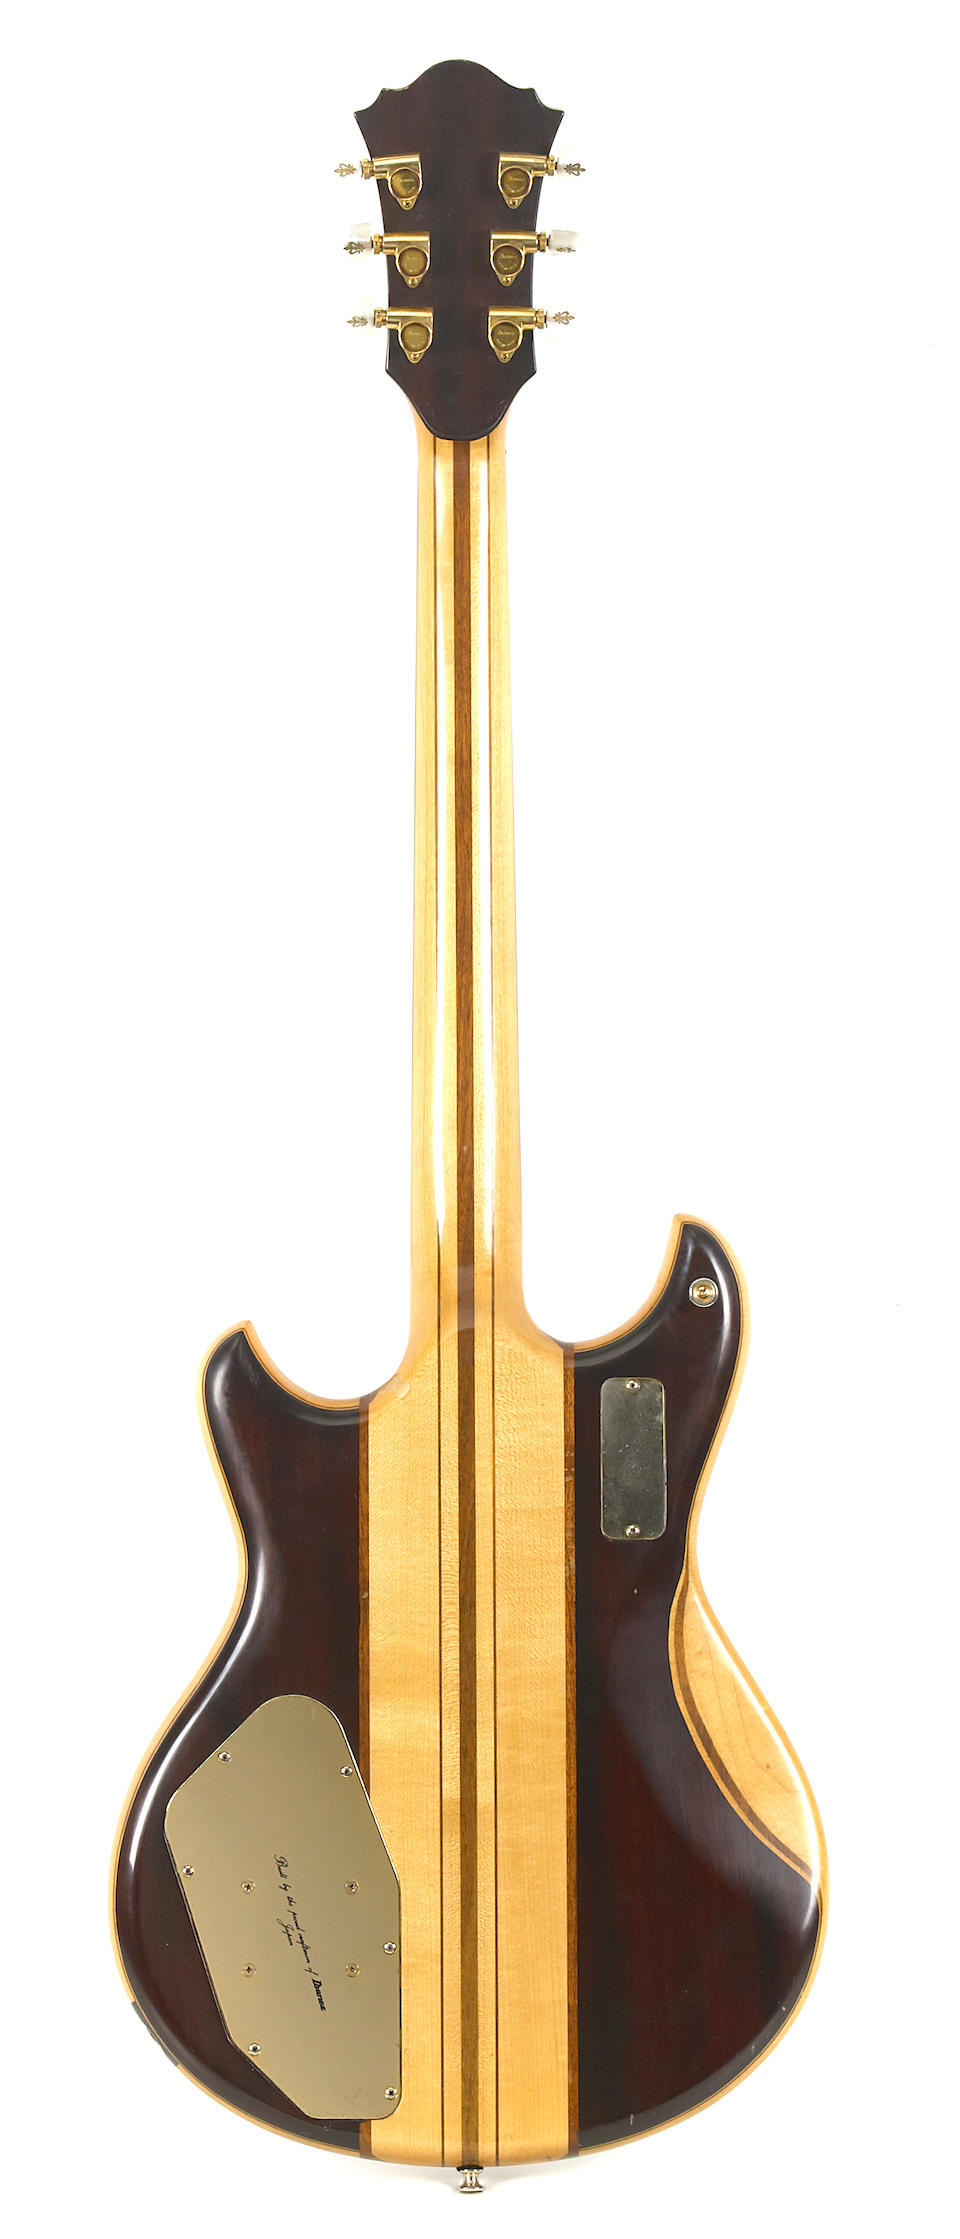 A guitar designed by Ibanez in conjunction with Jeff Hassleberger and Bob Weir, ca. 1977